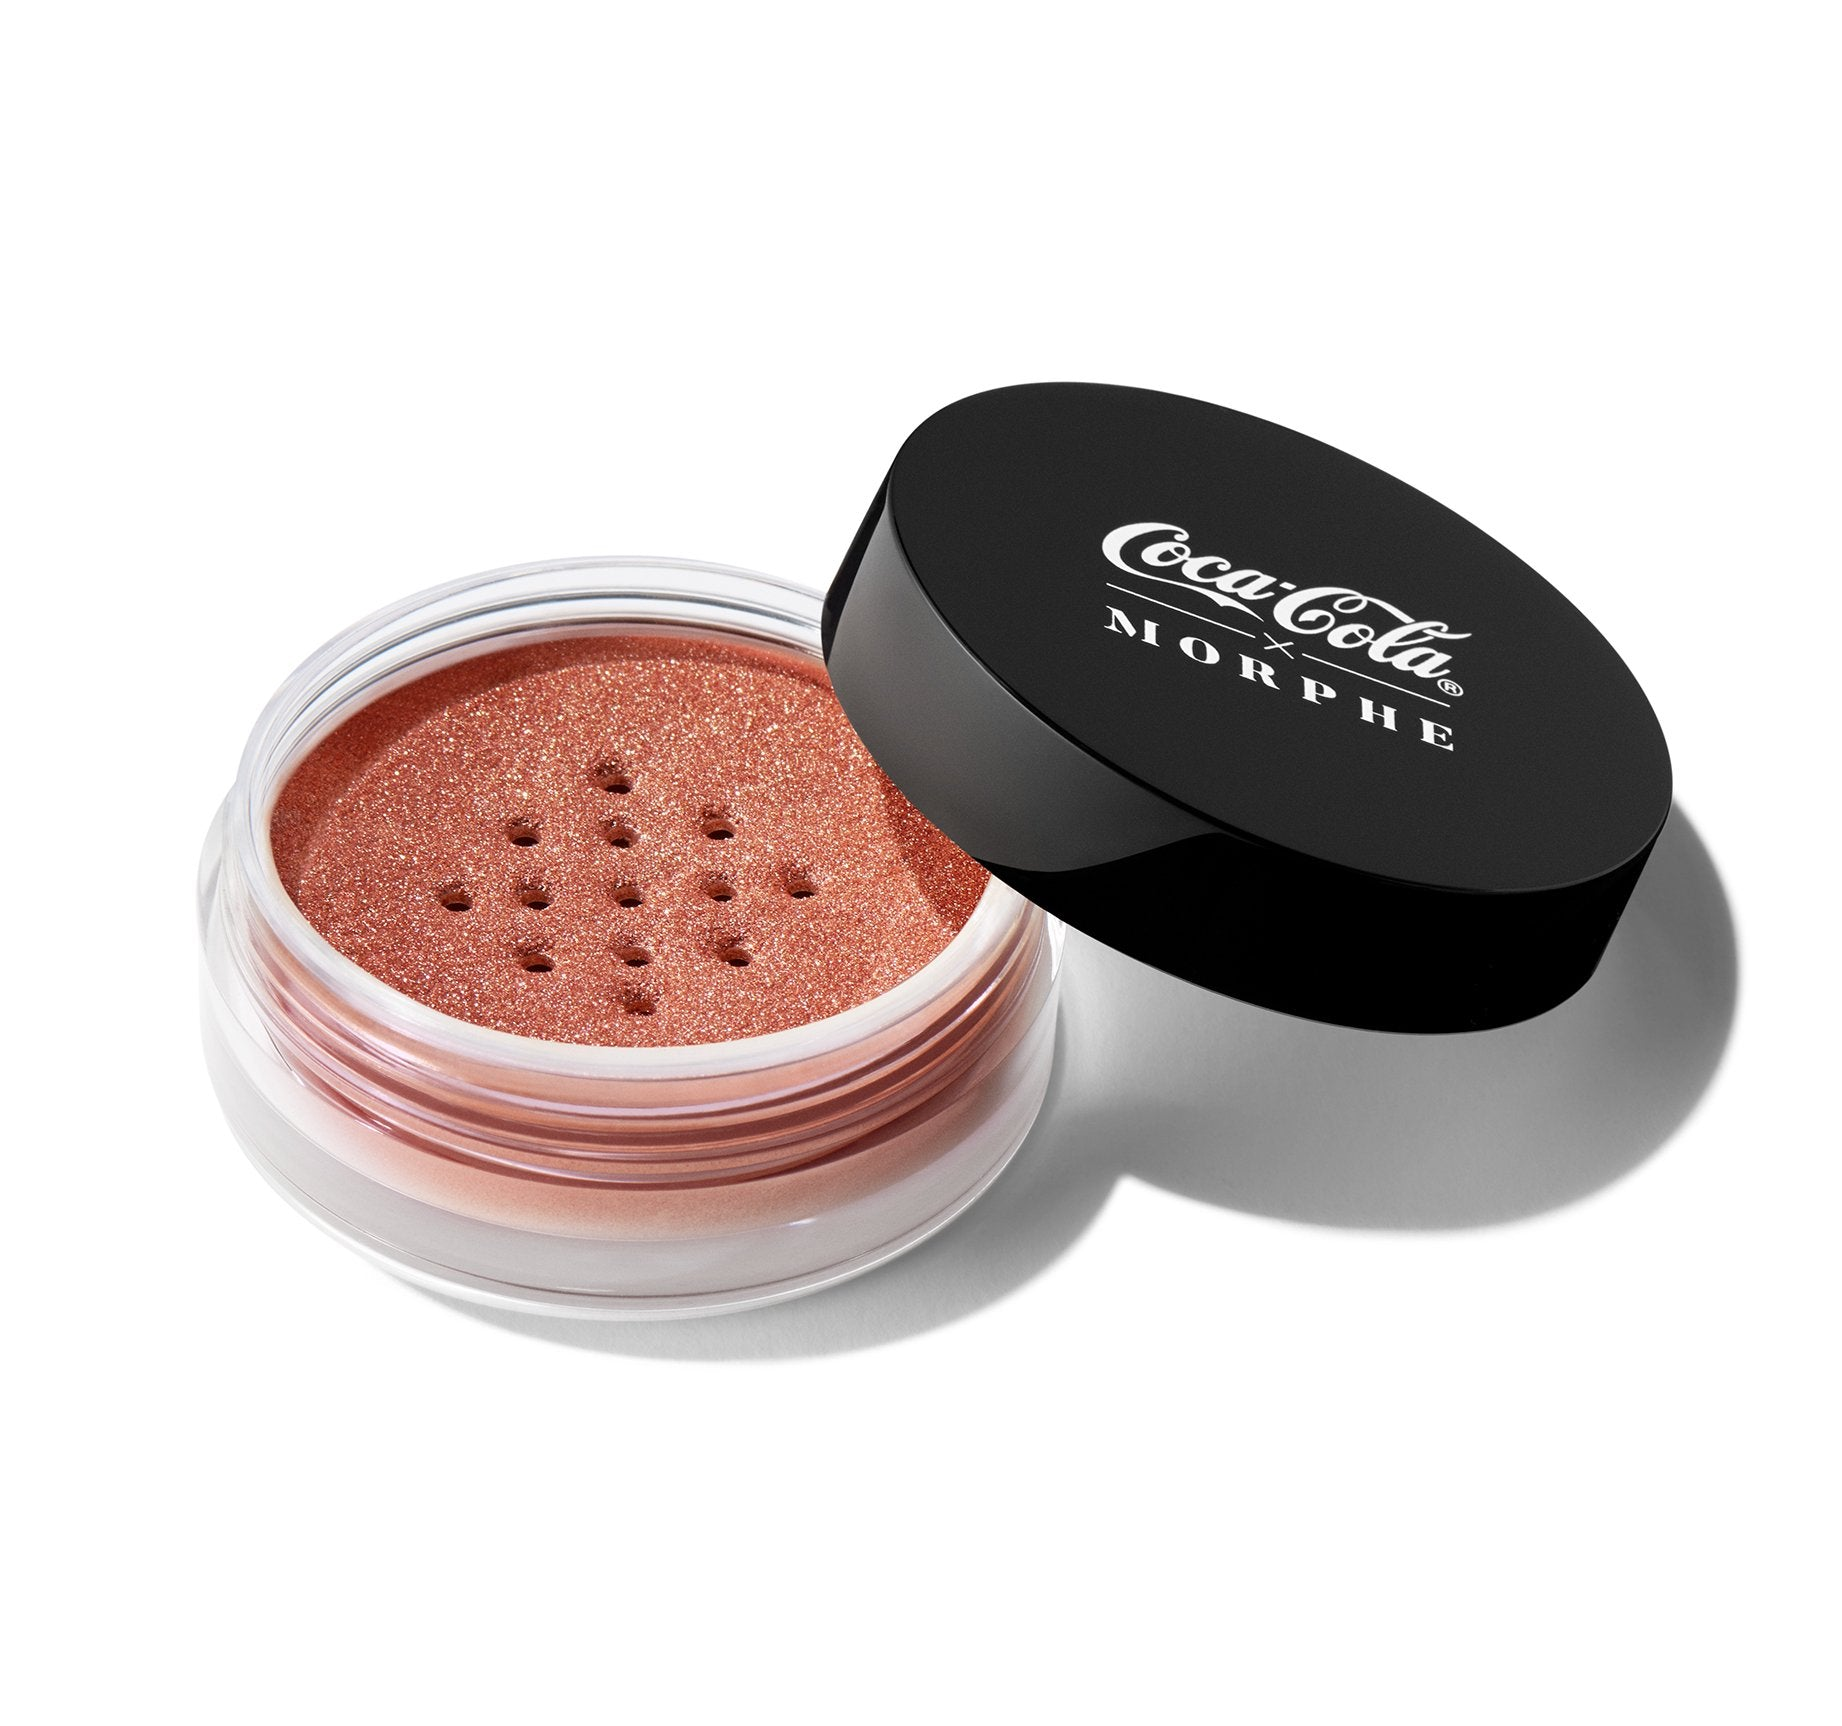 COCA--COLA X MORPHE GLOWING PLACES LOSER HIGHLIGHTERPUDER - SERVE SPARKLING, Größeres Bild anzeigen